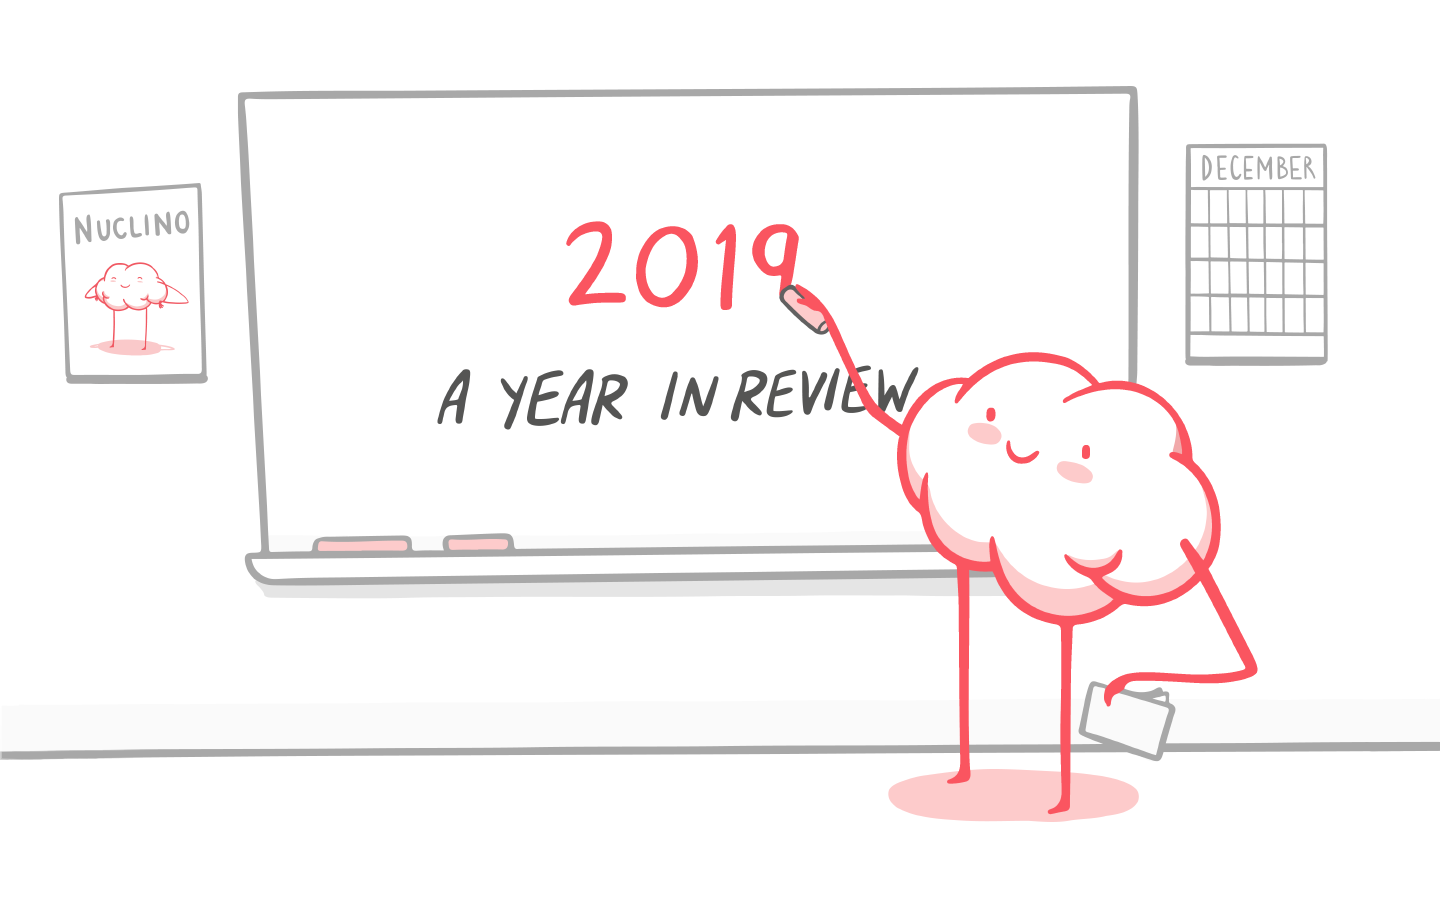 files/8babf22d-7868-465a-b84b-9bab4869b180/nuclino-2019-year-review.png